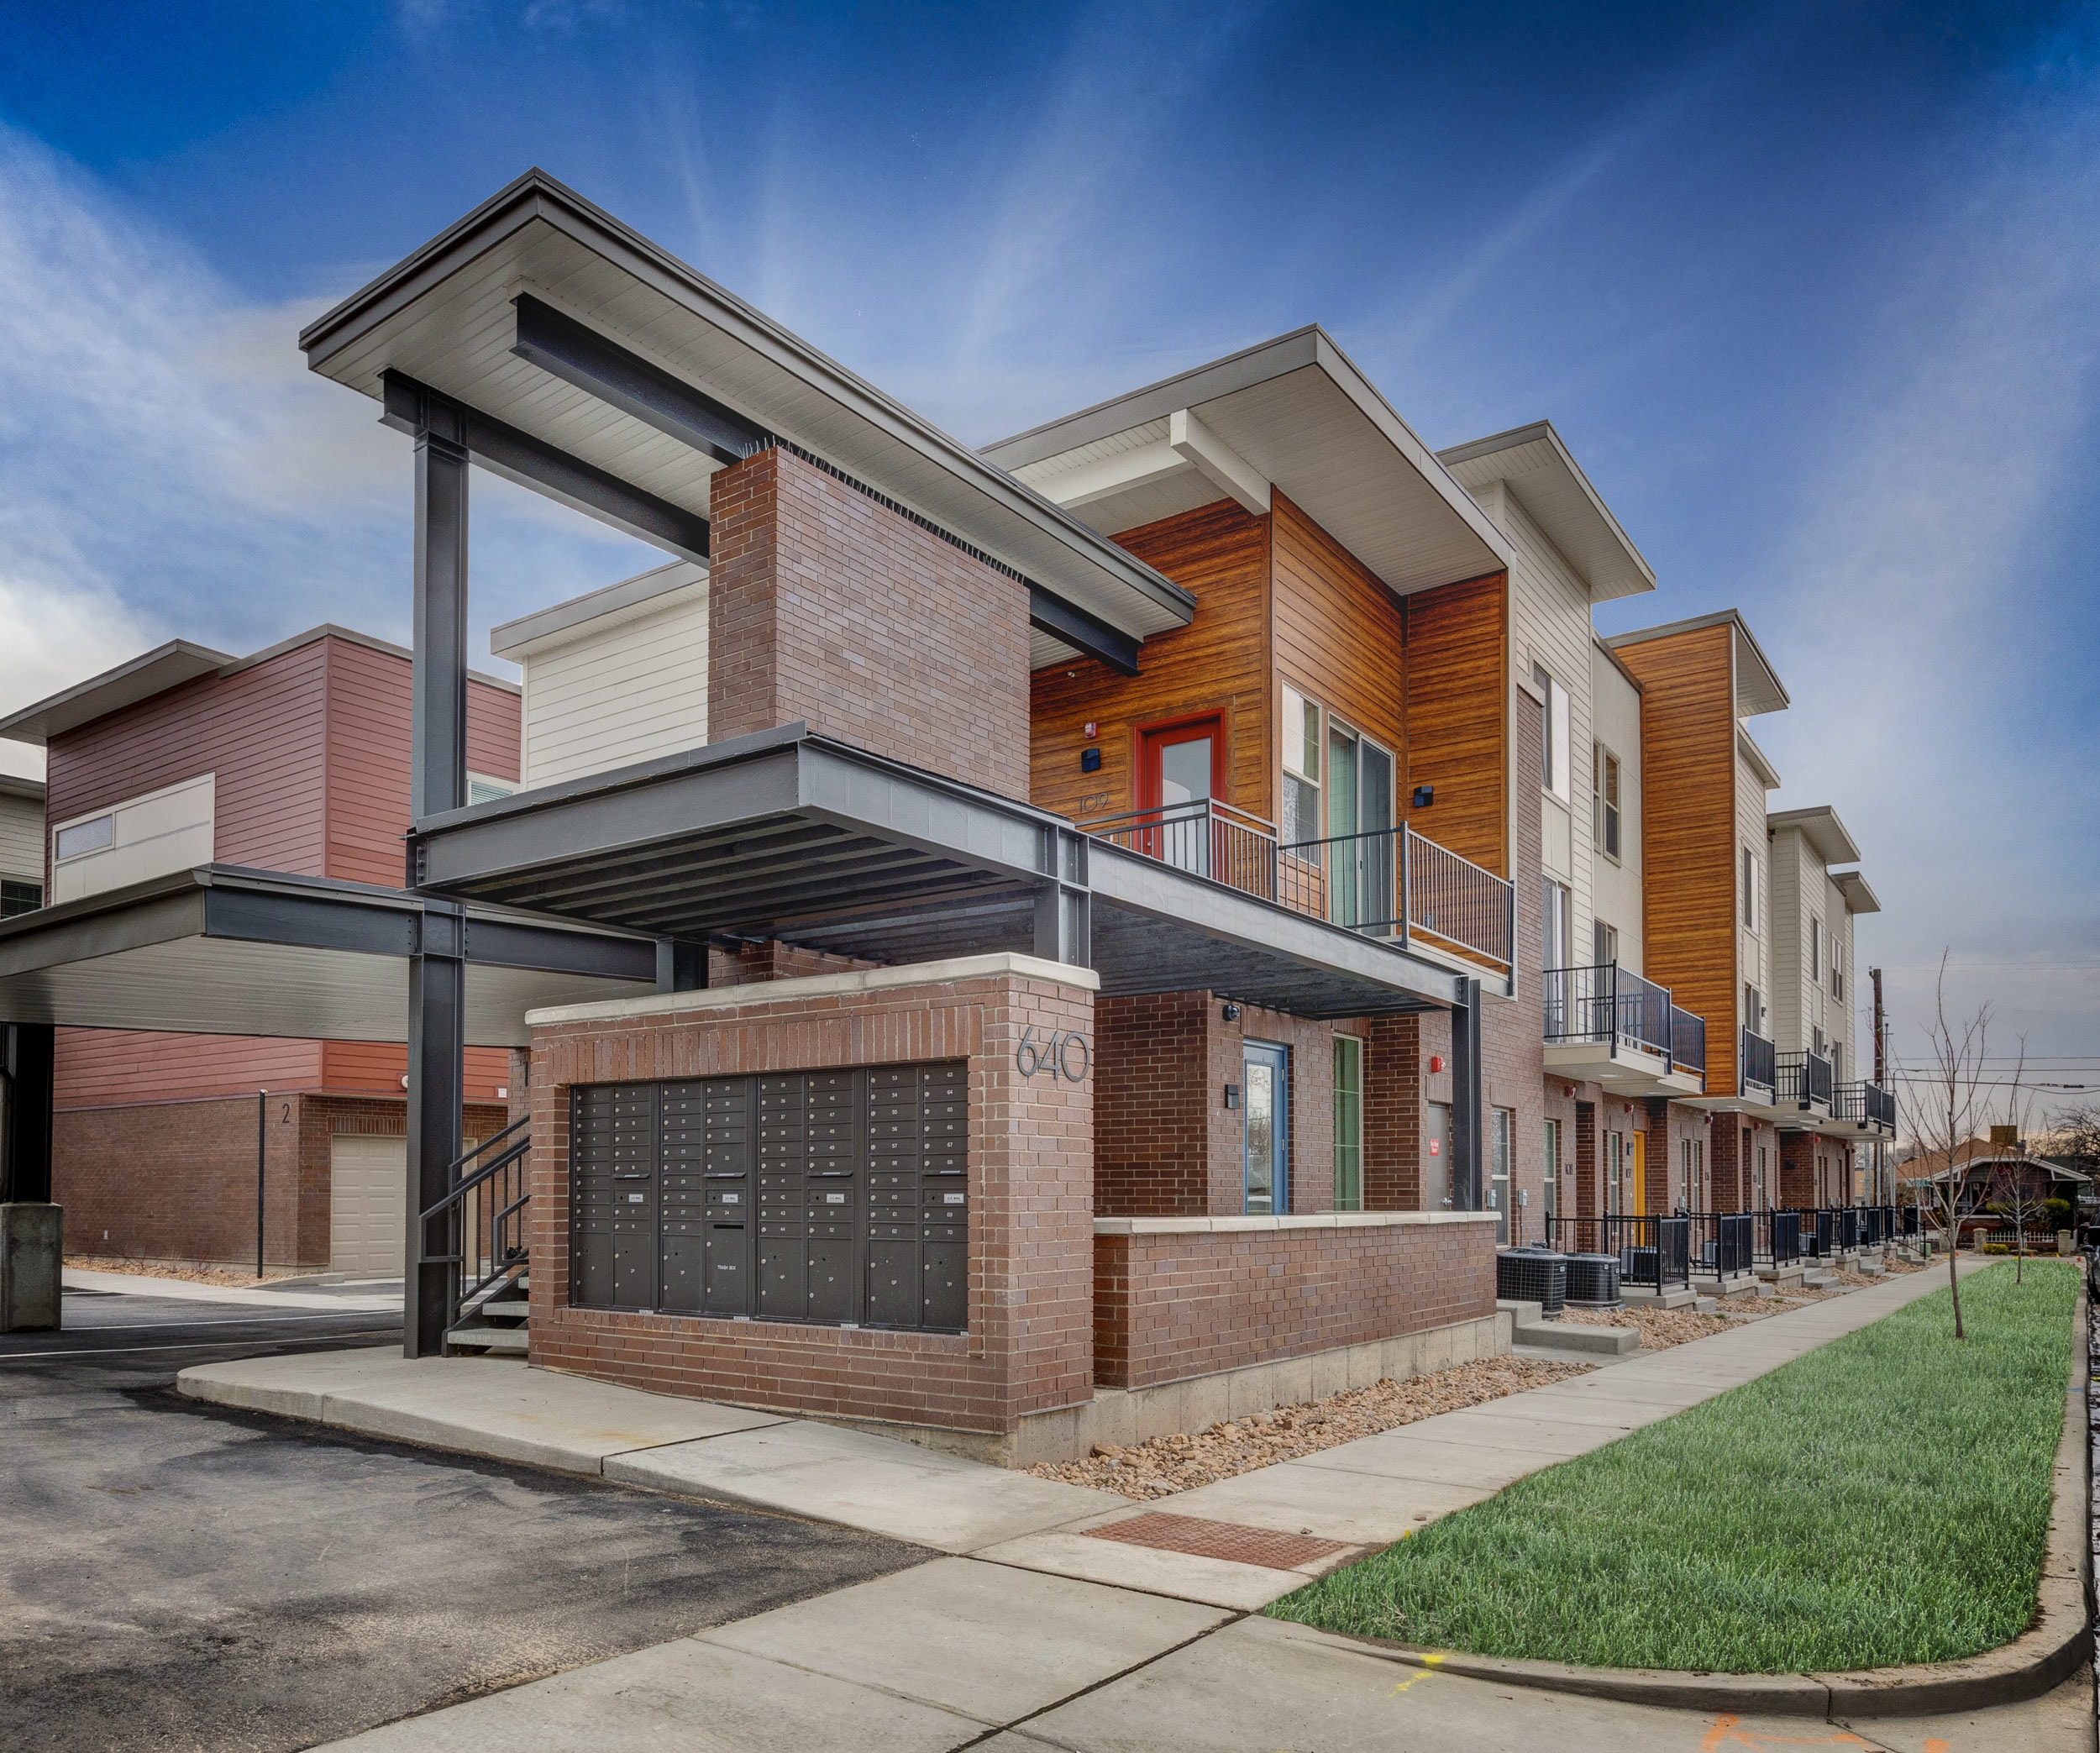 100 Best Apartments In Salt Lake City, UT (with pictures)!